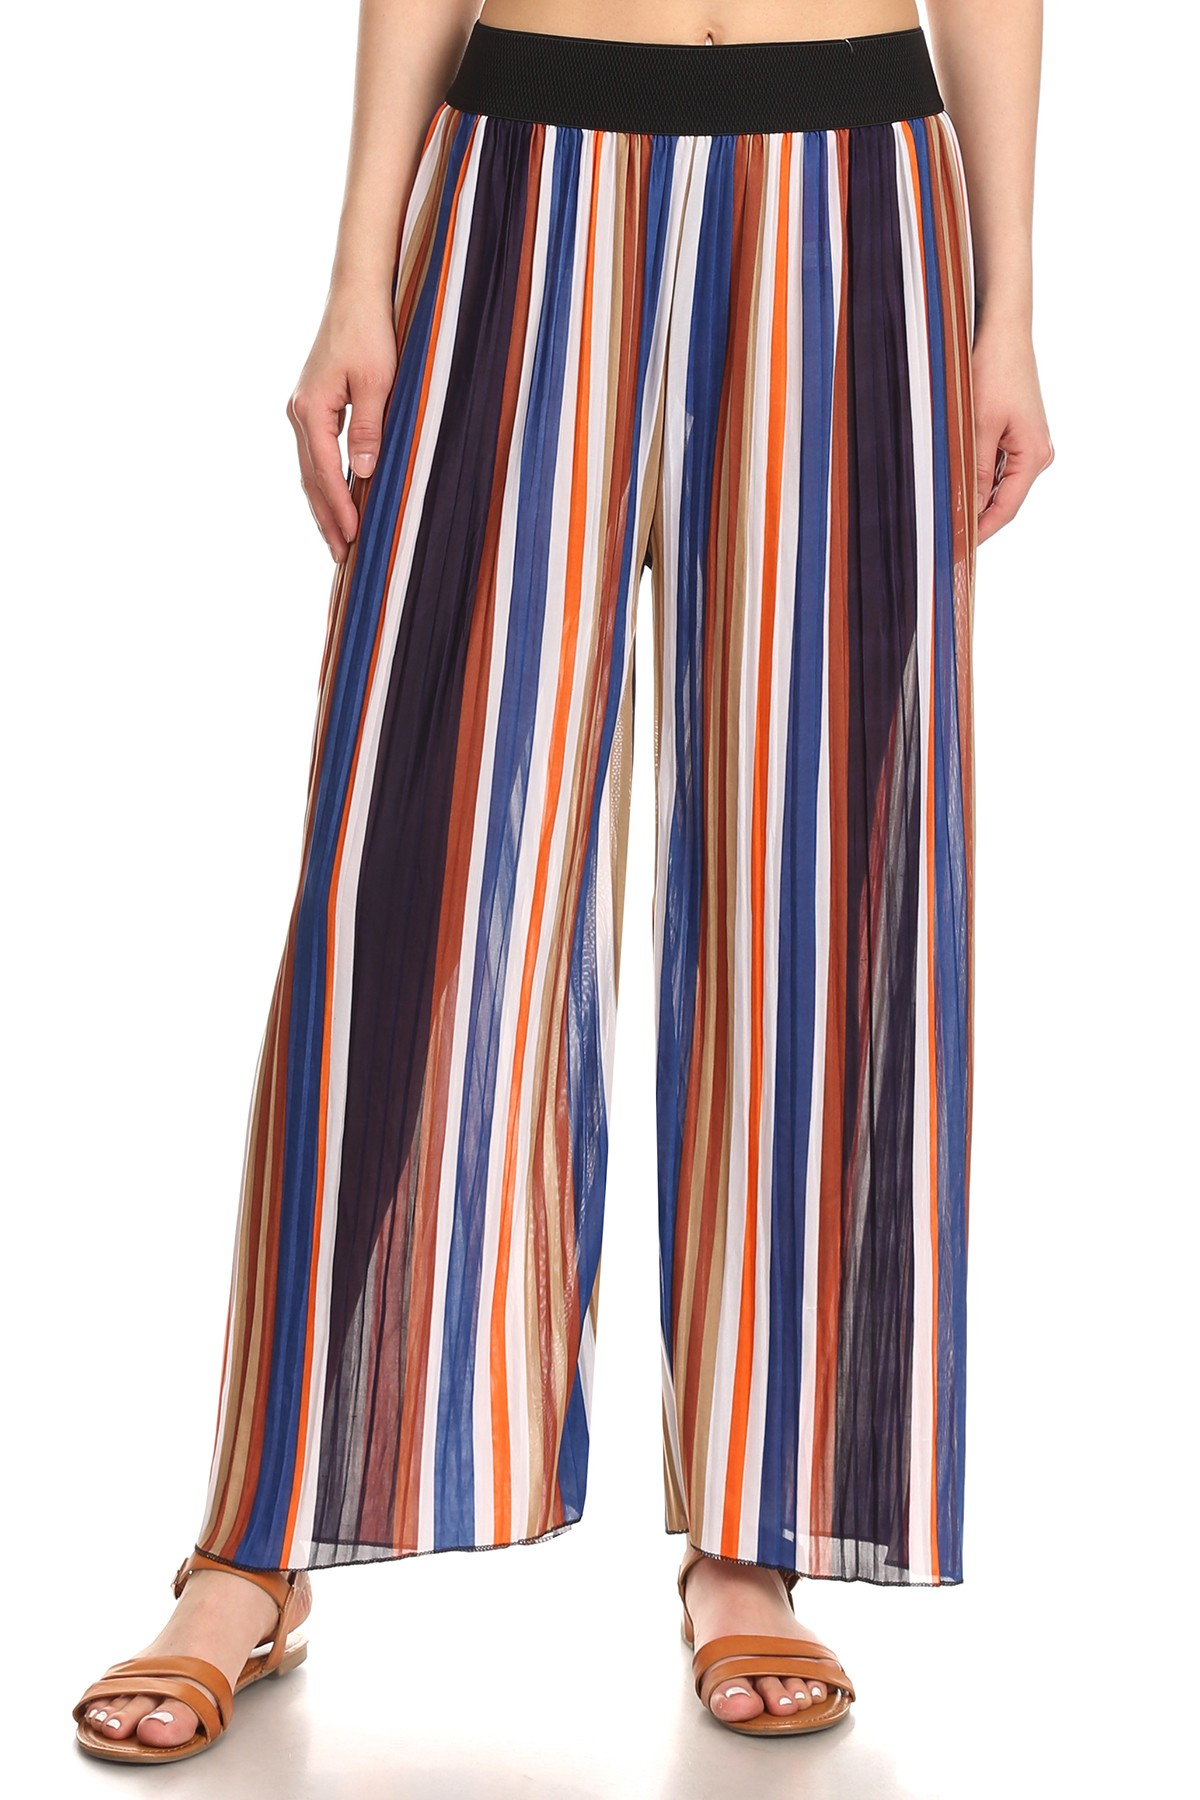 The easy-breezy wide leg silhouette of palazzo pants make them a comfortable and chic women's wardrobe staple. Our constantly changing assortment includes basic black, navy, brown, beige, cream and white options that look great with printed tops and wedges.